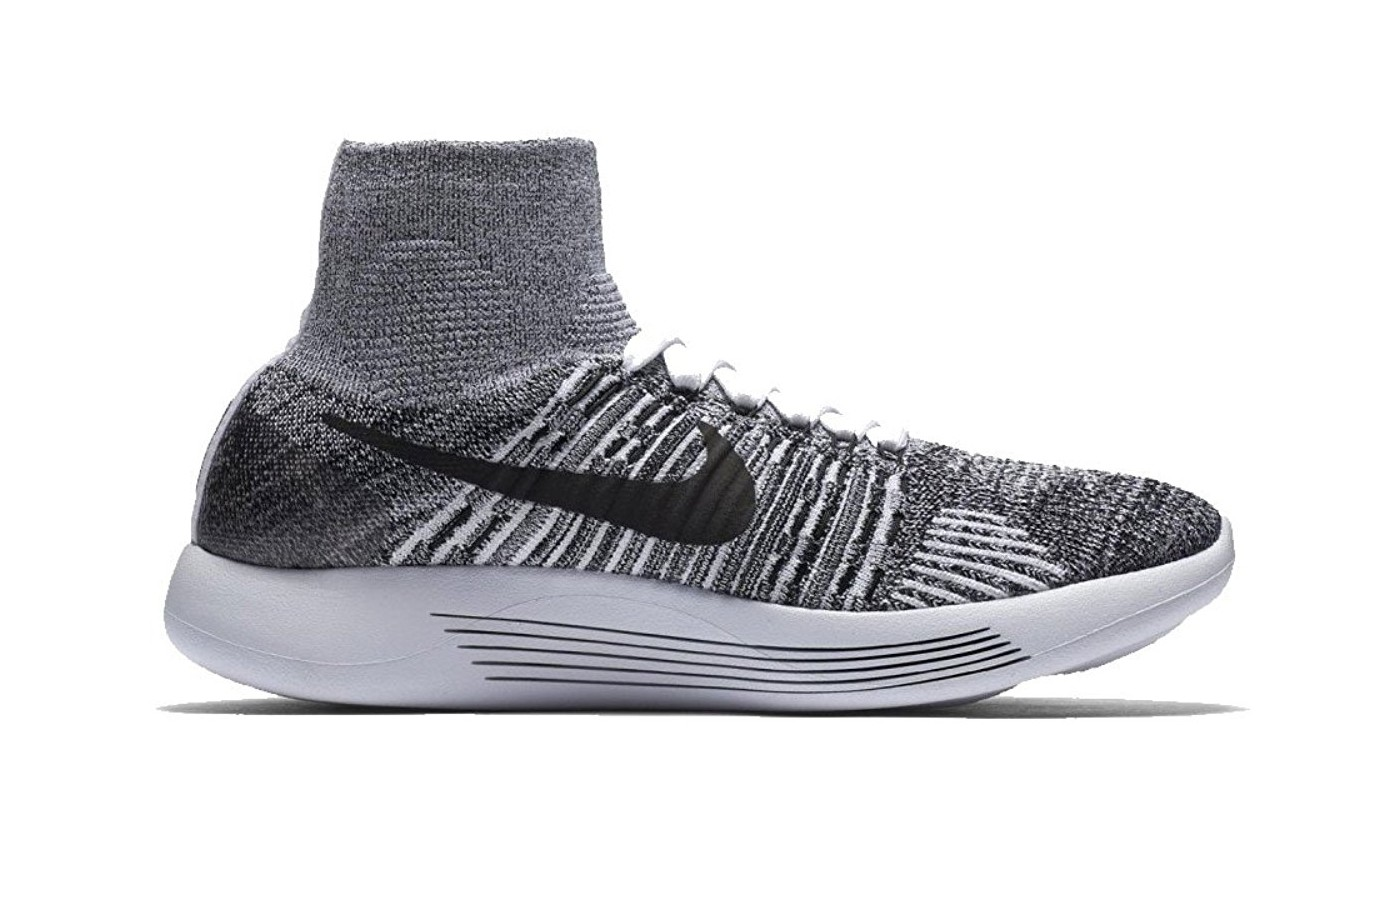 best service 2d892 975ee Nike Lunarepic Flyknit Reviewed   Tested for Performance. Full pair of the  Lunarepic  Full sideview of the lunarepic ...